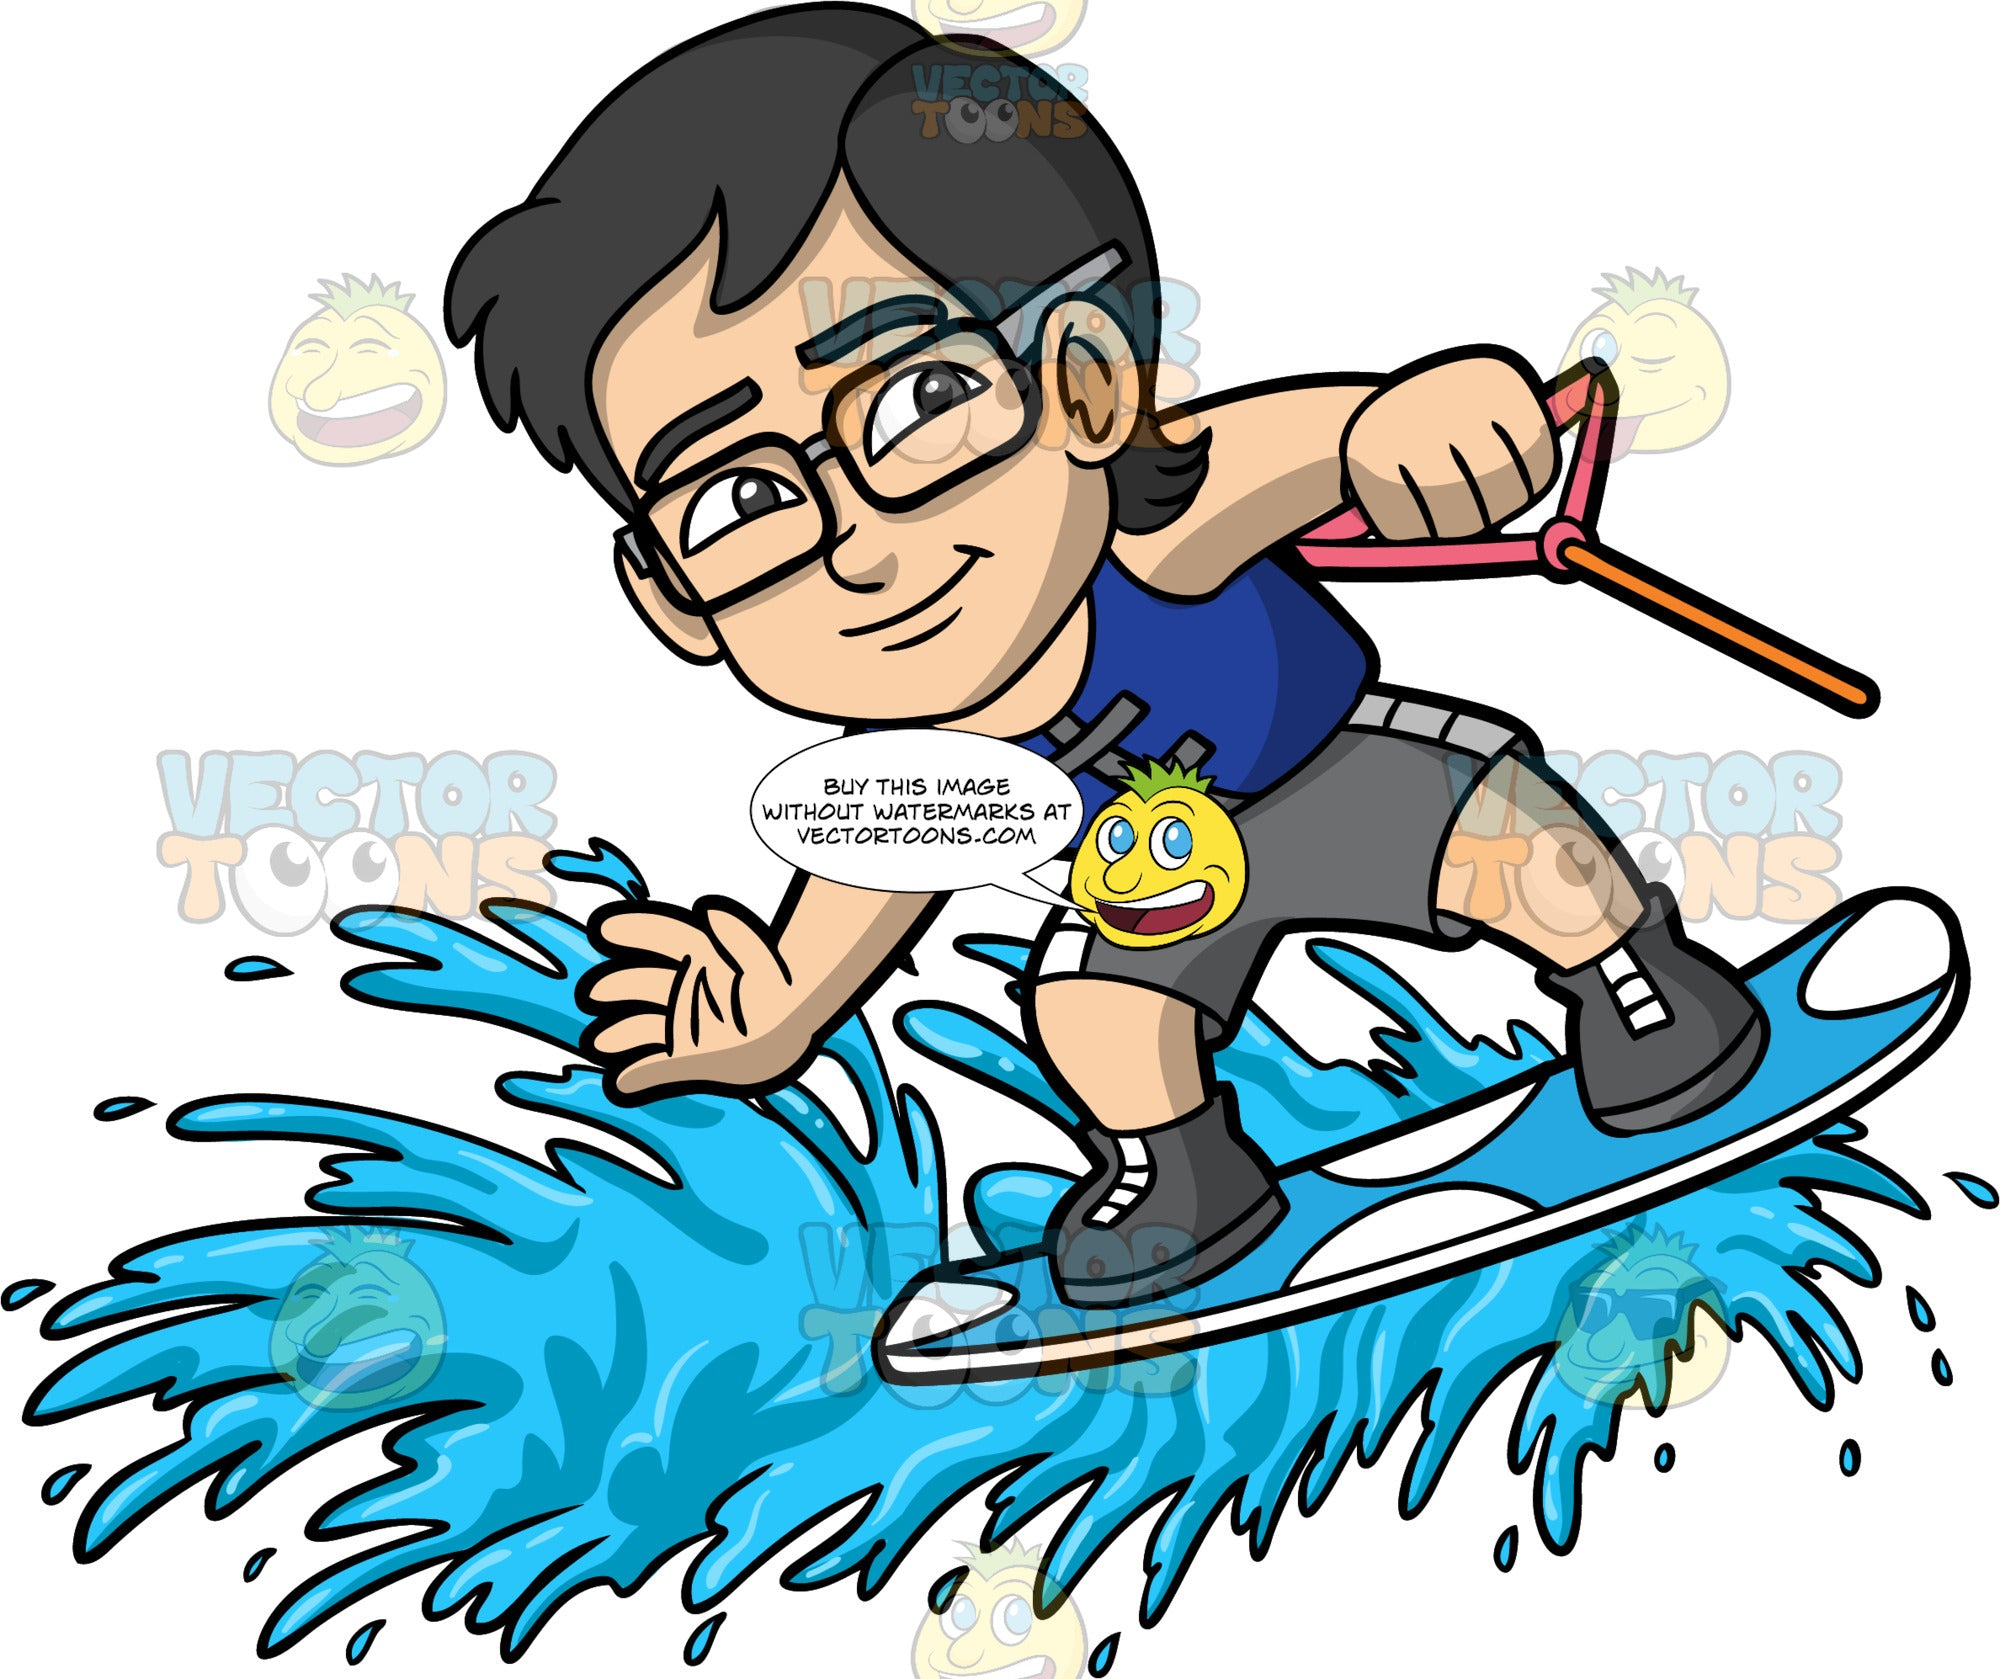 Young Simon Having Fun Water Skiing. A young Asian boy wearing eyeglasses, gray swim trunks, and a blue life jacket, skiing on one water ski